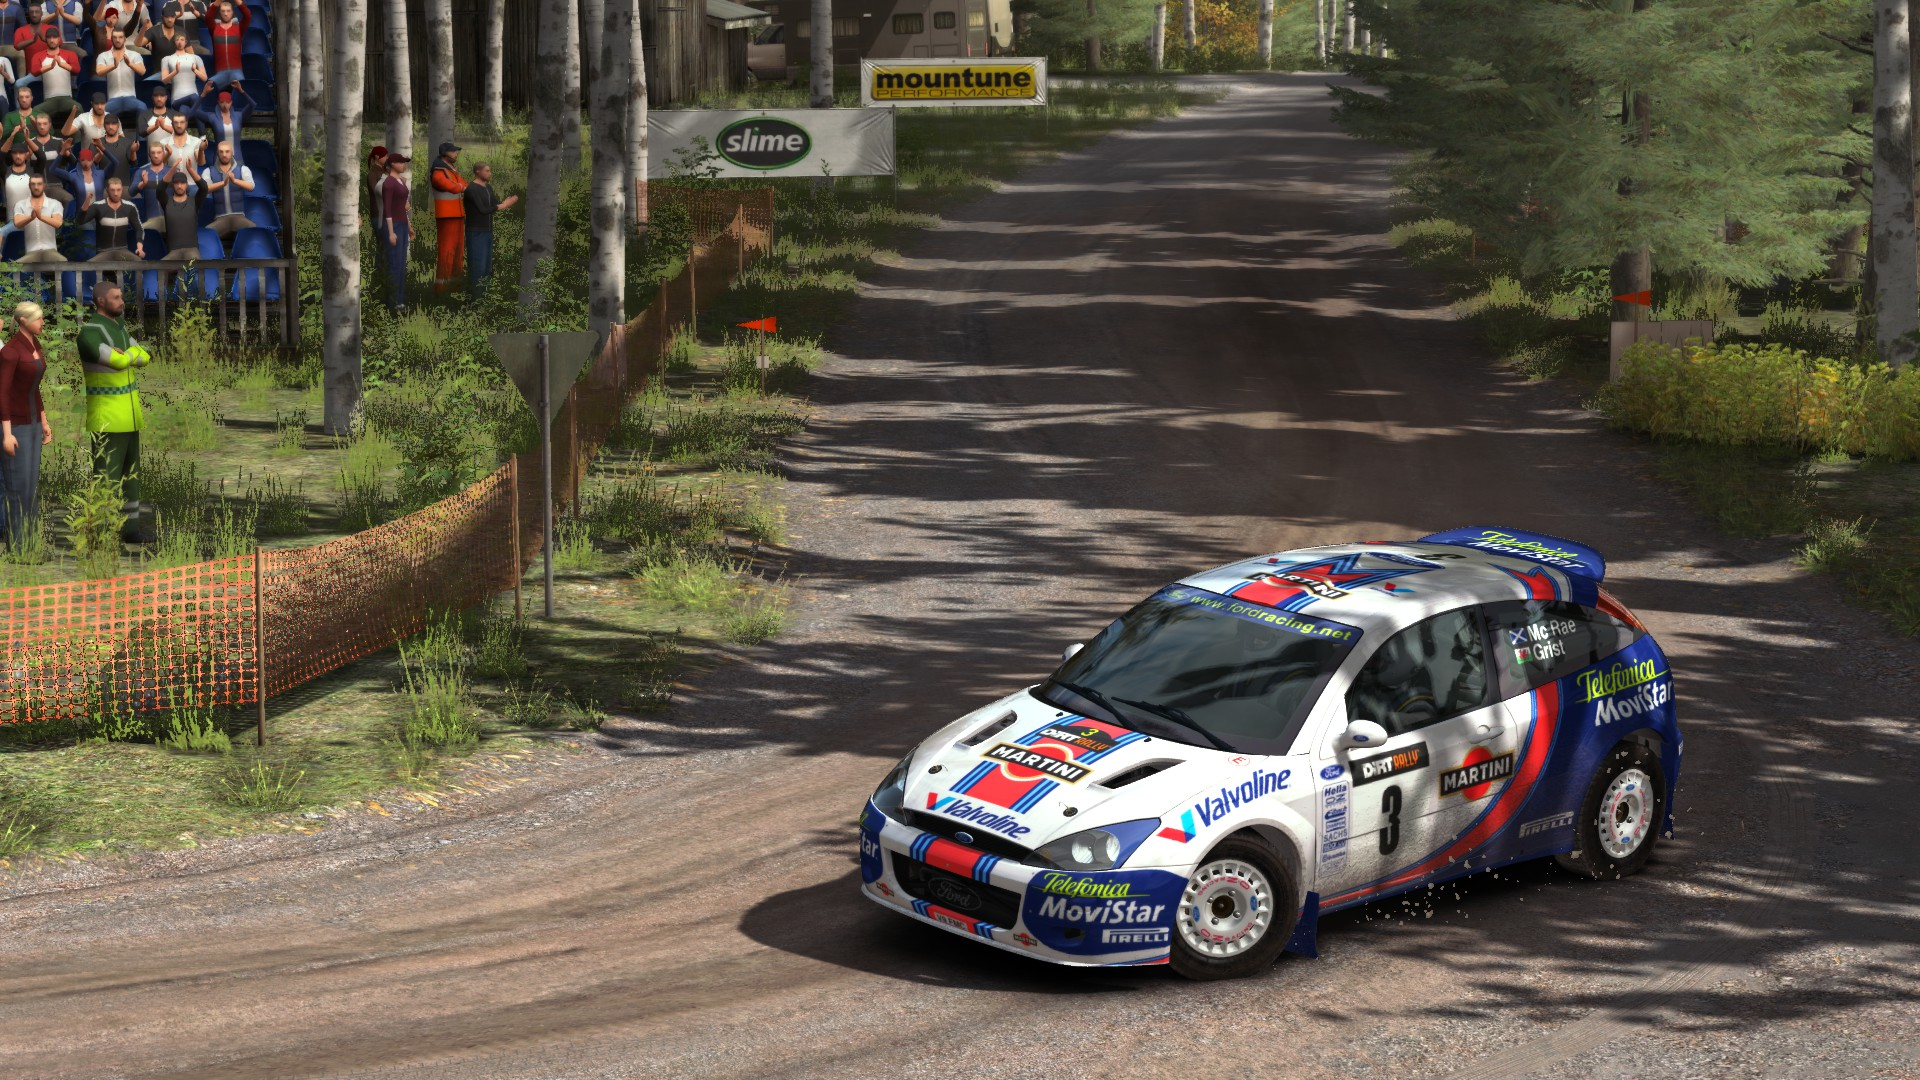 DiRT Rally latest patch brings VR support! | RaceDepartment - Latest